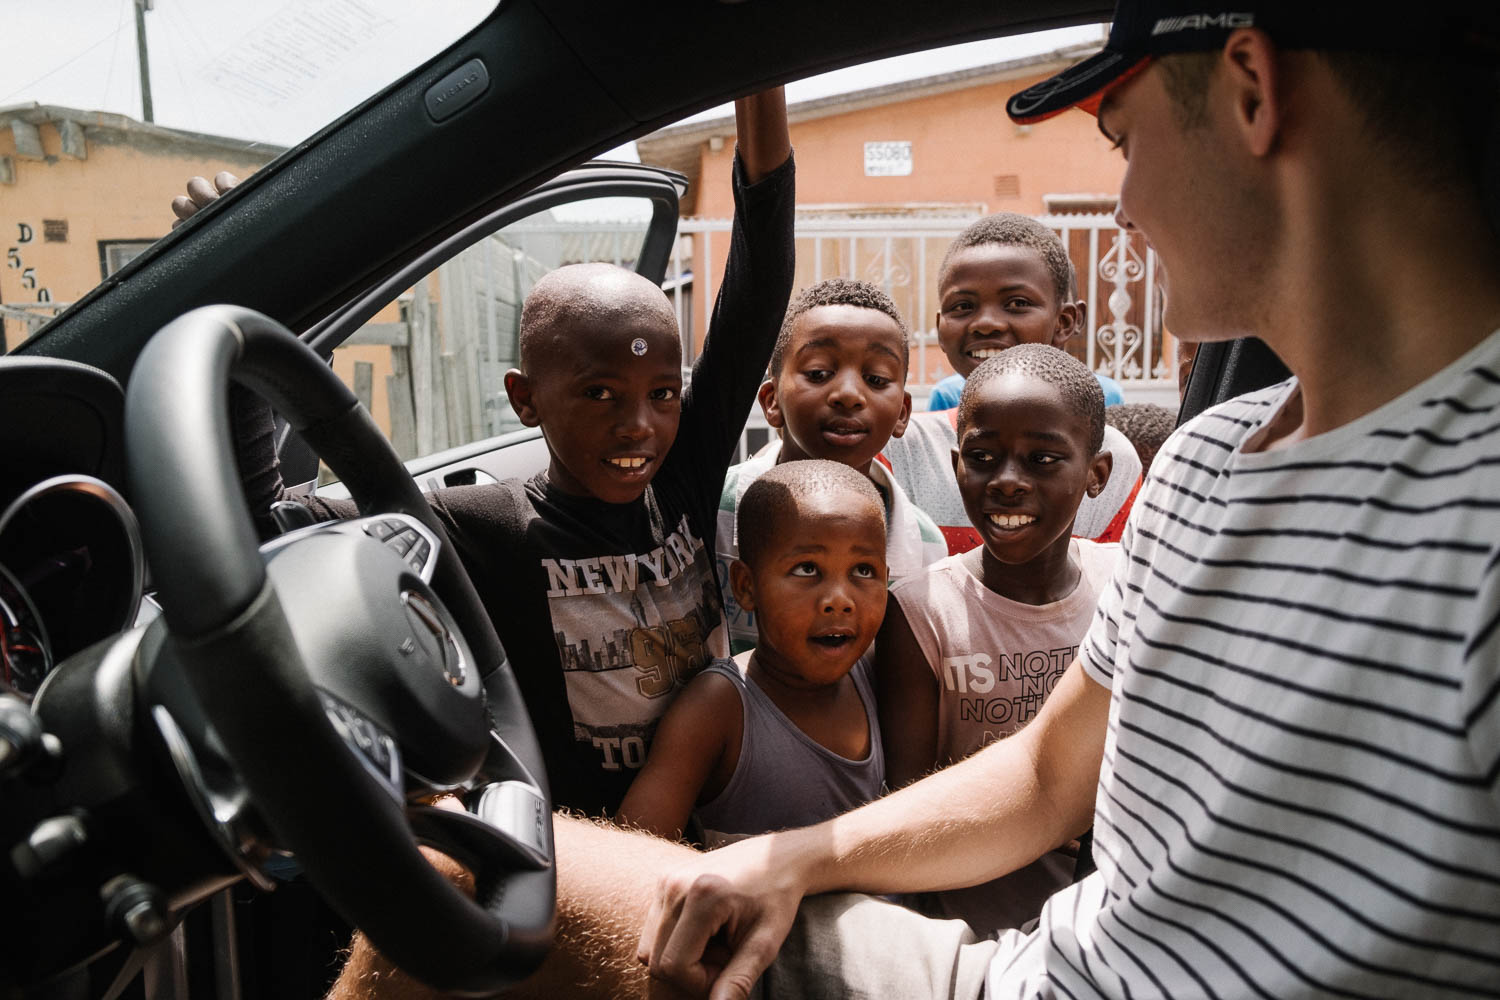 Visiting the kids in the townships of South Africa! -